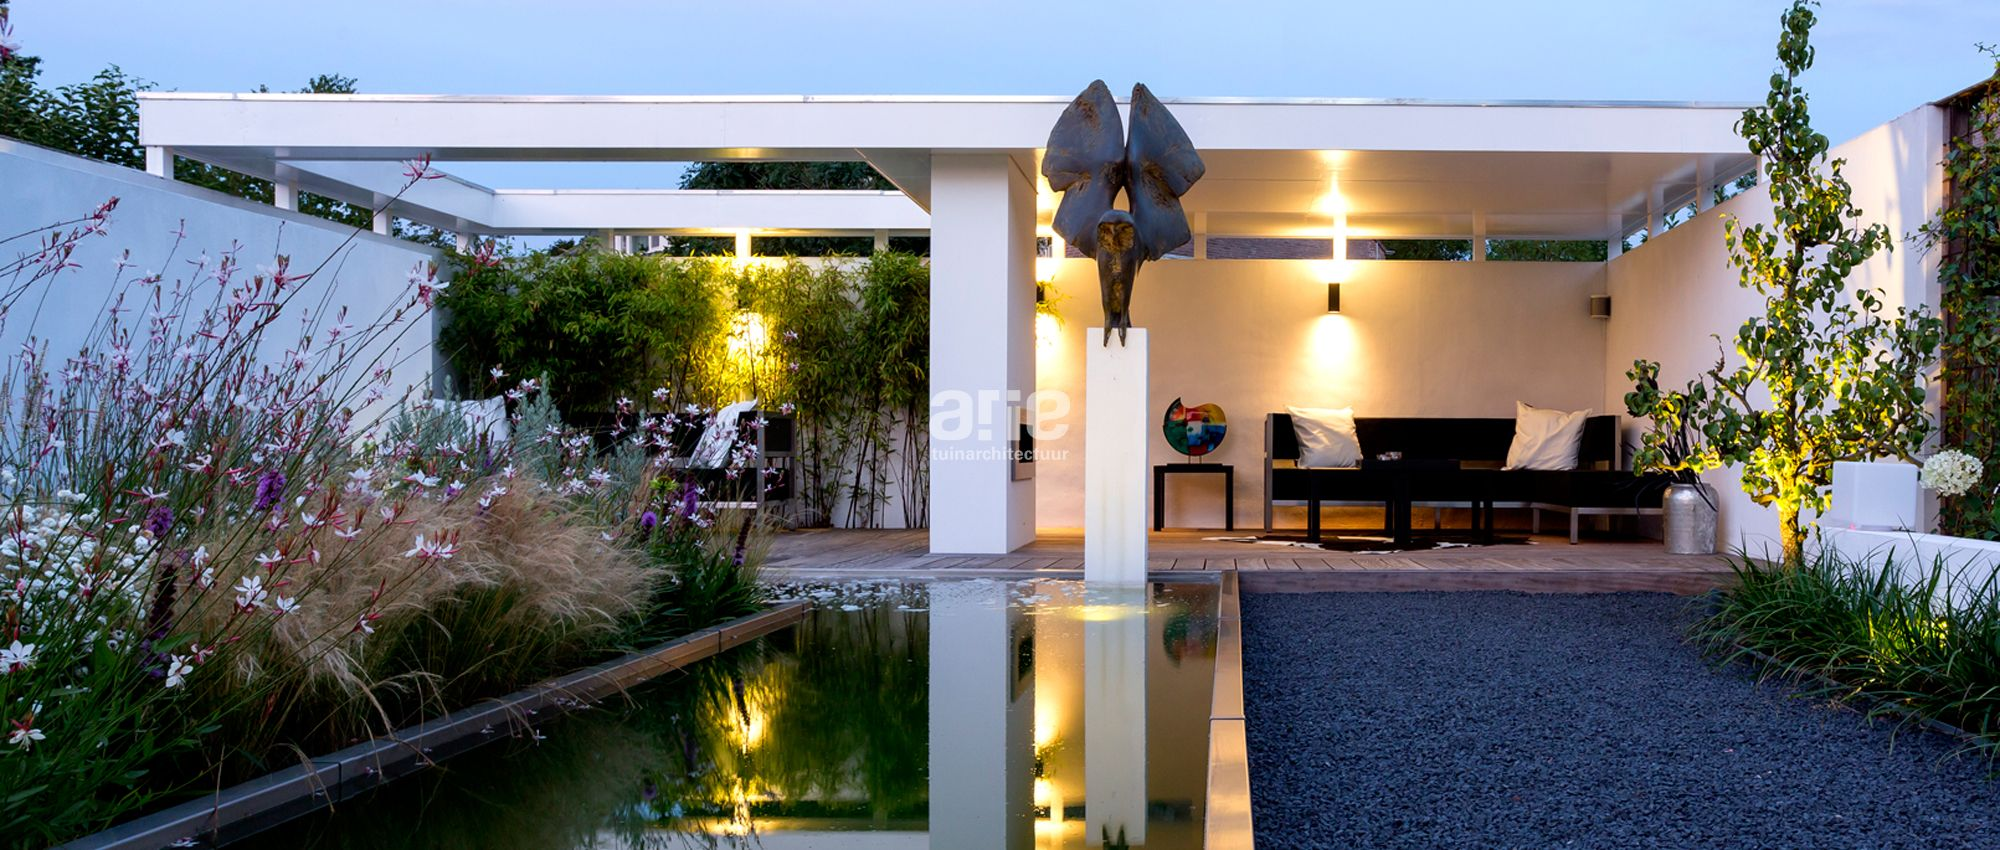 Tuinarchitect arie van der hout tuinontwerp tuinadvies for Moderne tuin met overkapping